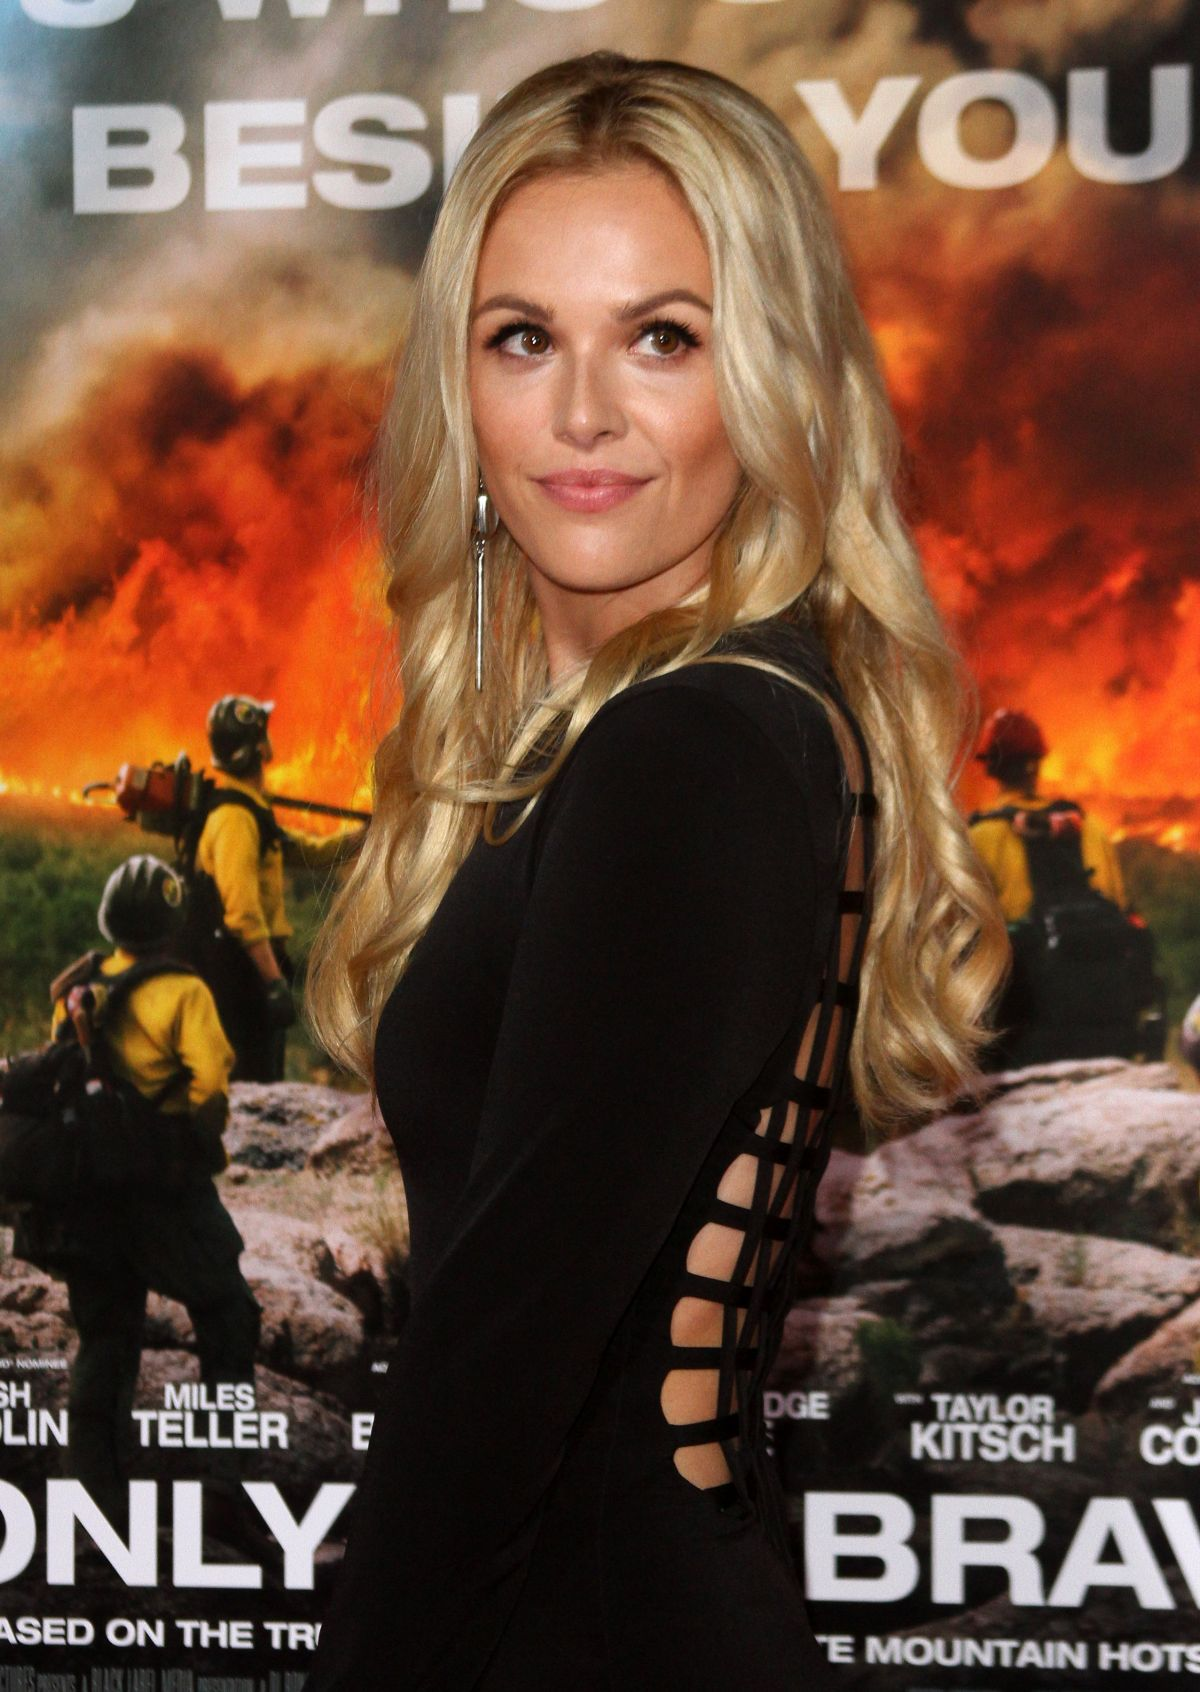 Natalie Hall At 'Only The Brave' film premiere, Los Angeles   natalie-hall-at-only-the-brave-film-premiere-los-angeles-14